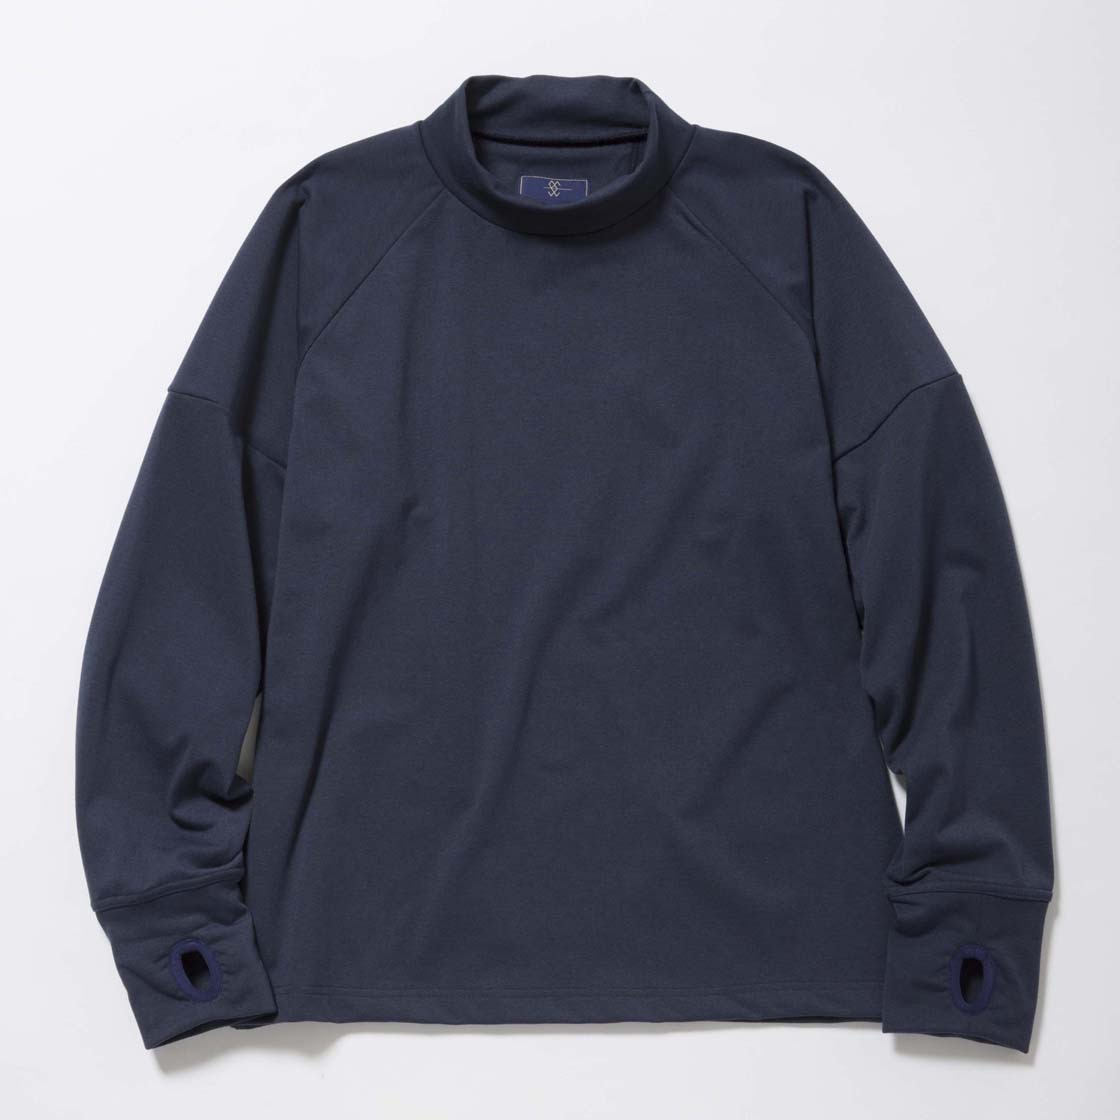 Dry Jersey High-necked